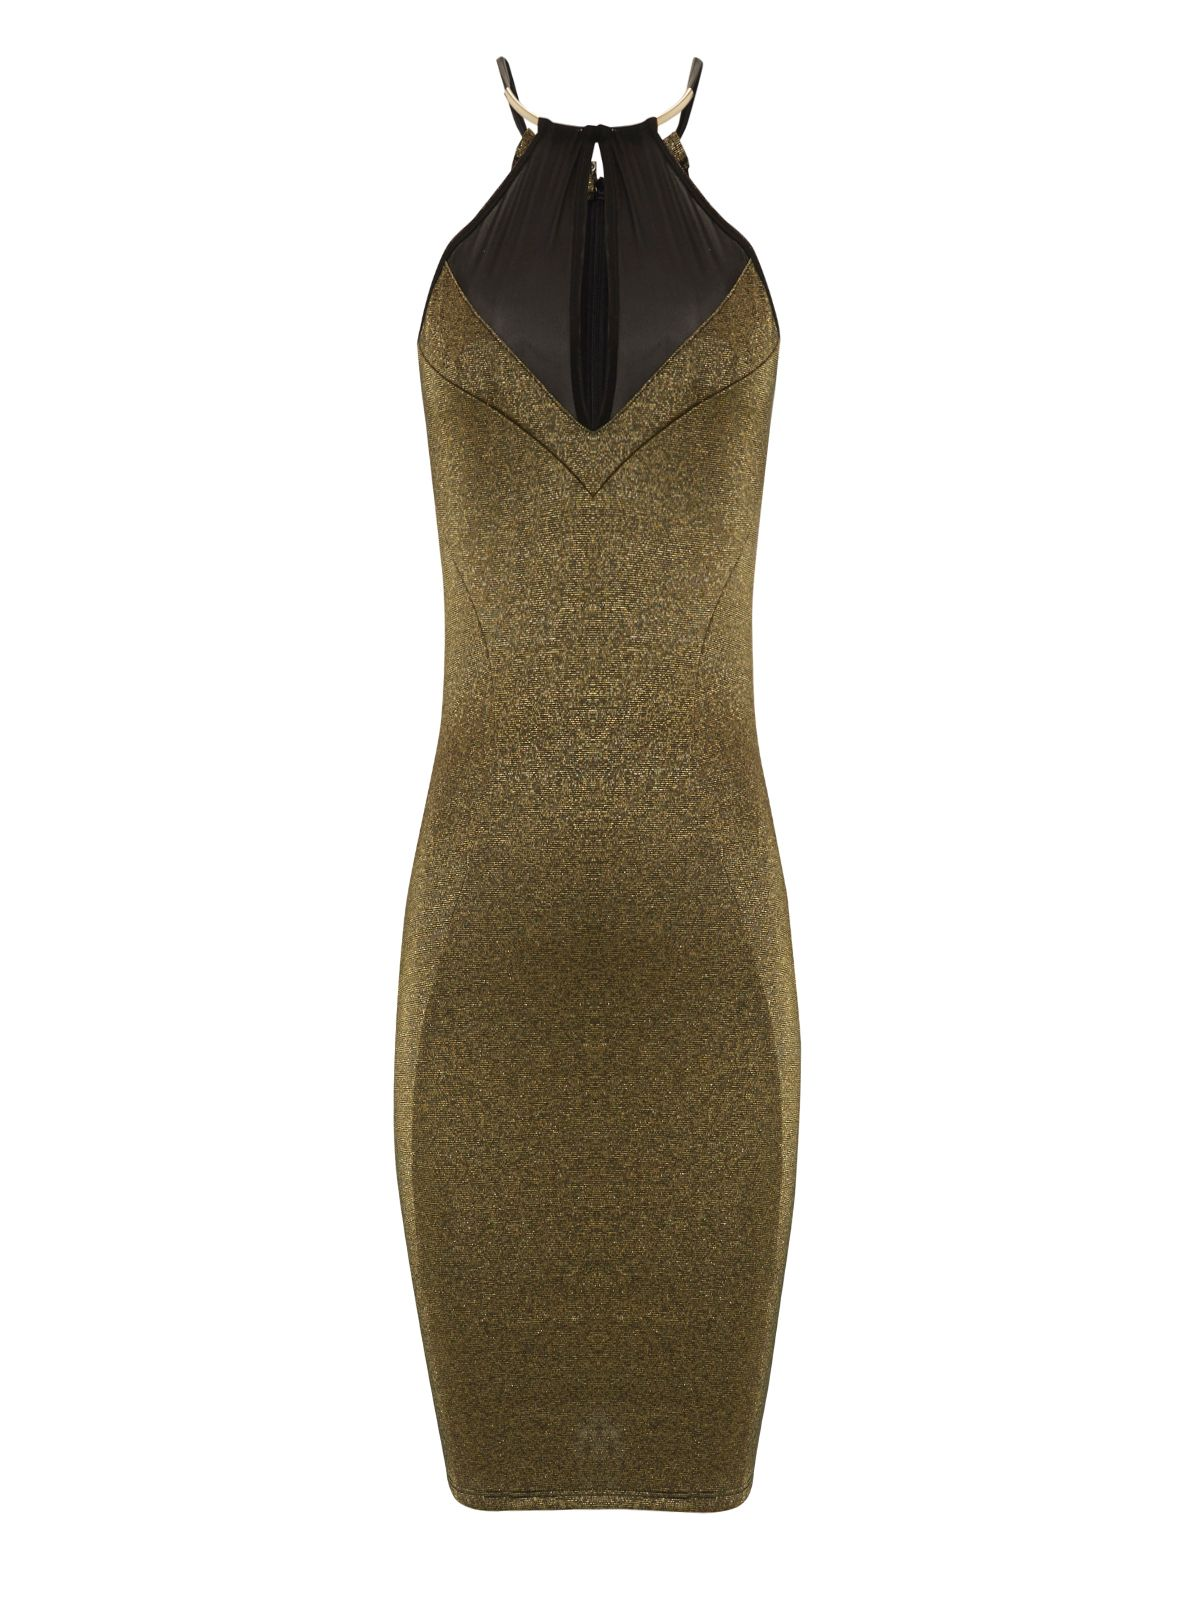 Gold metal trim bodycon dress